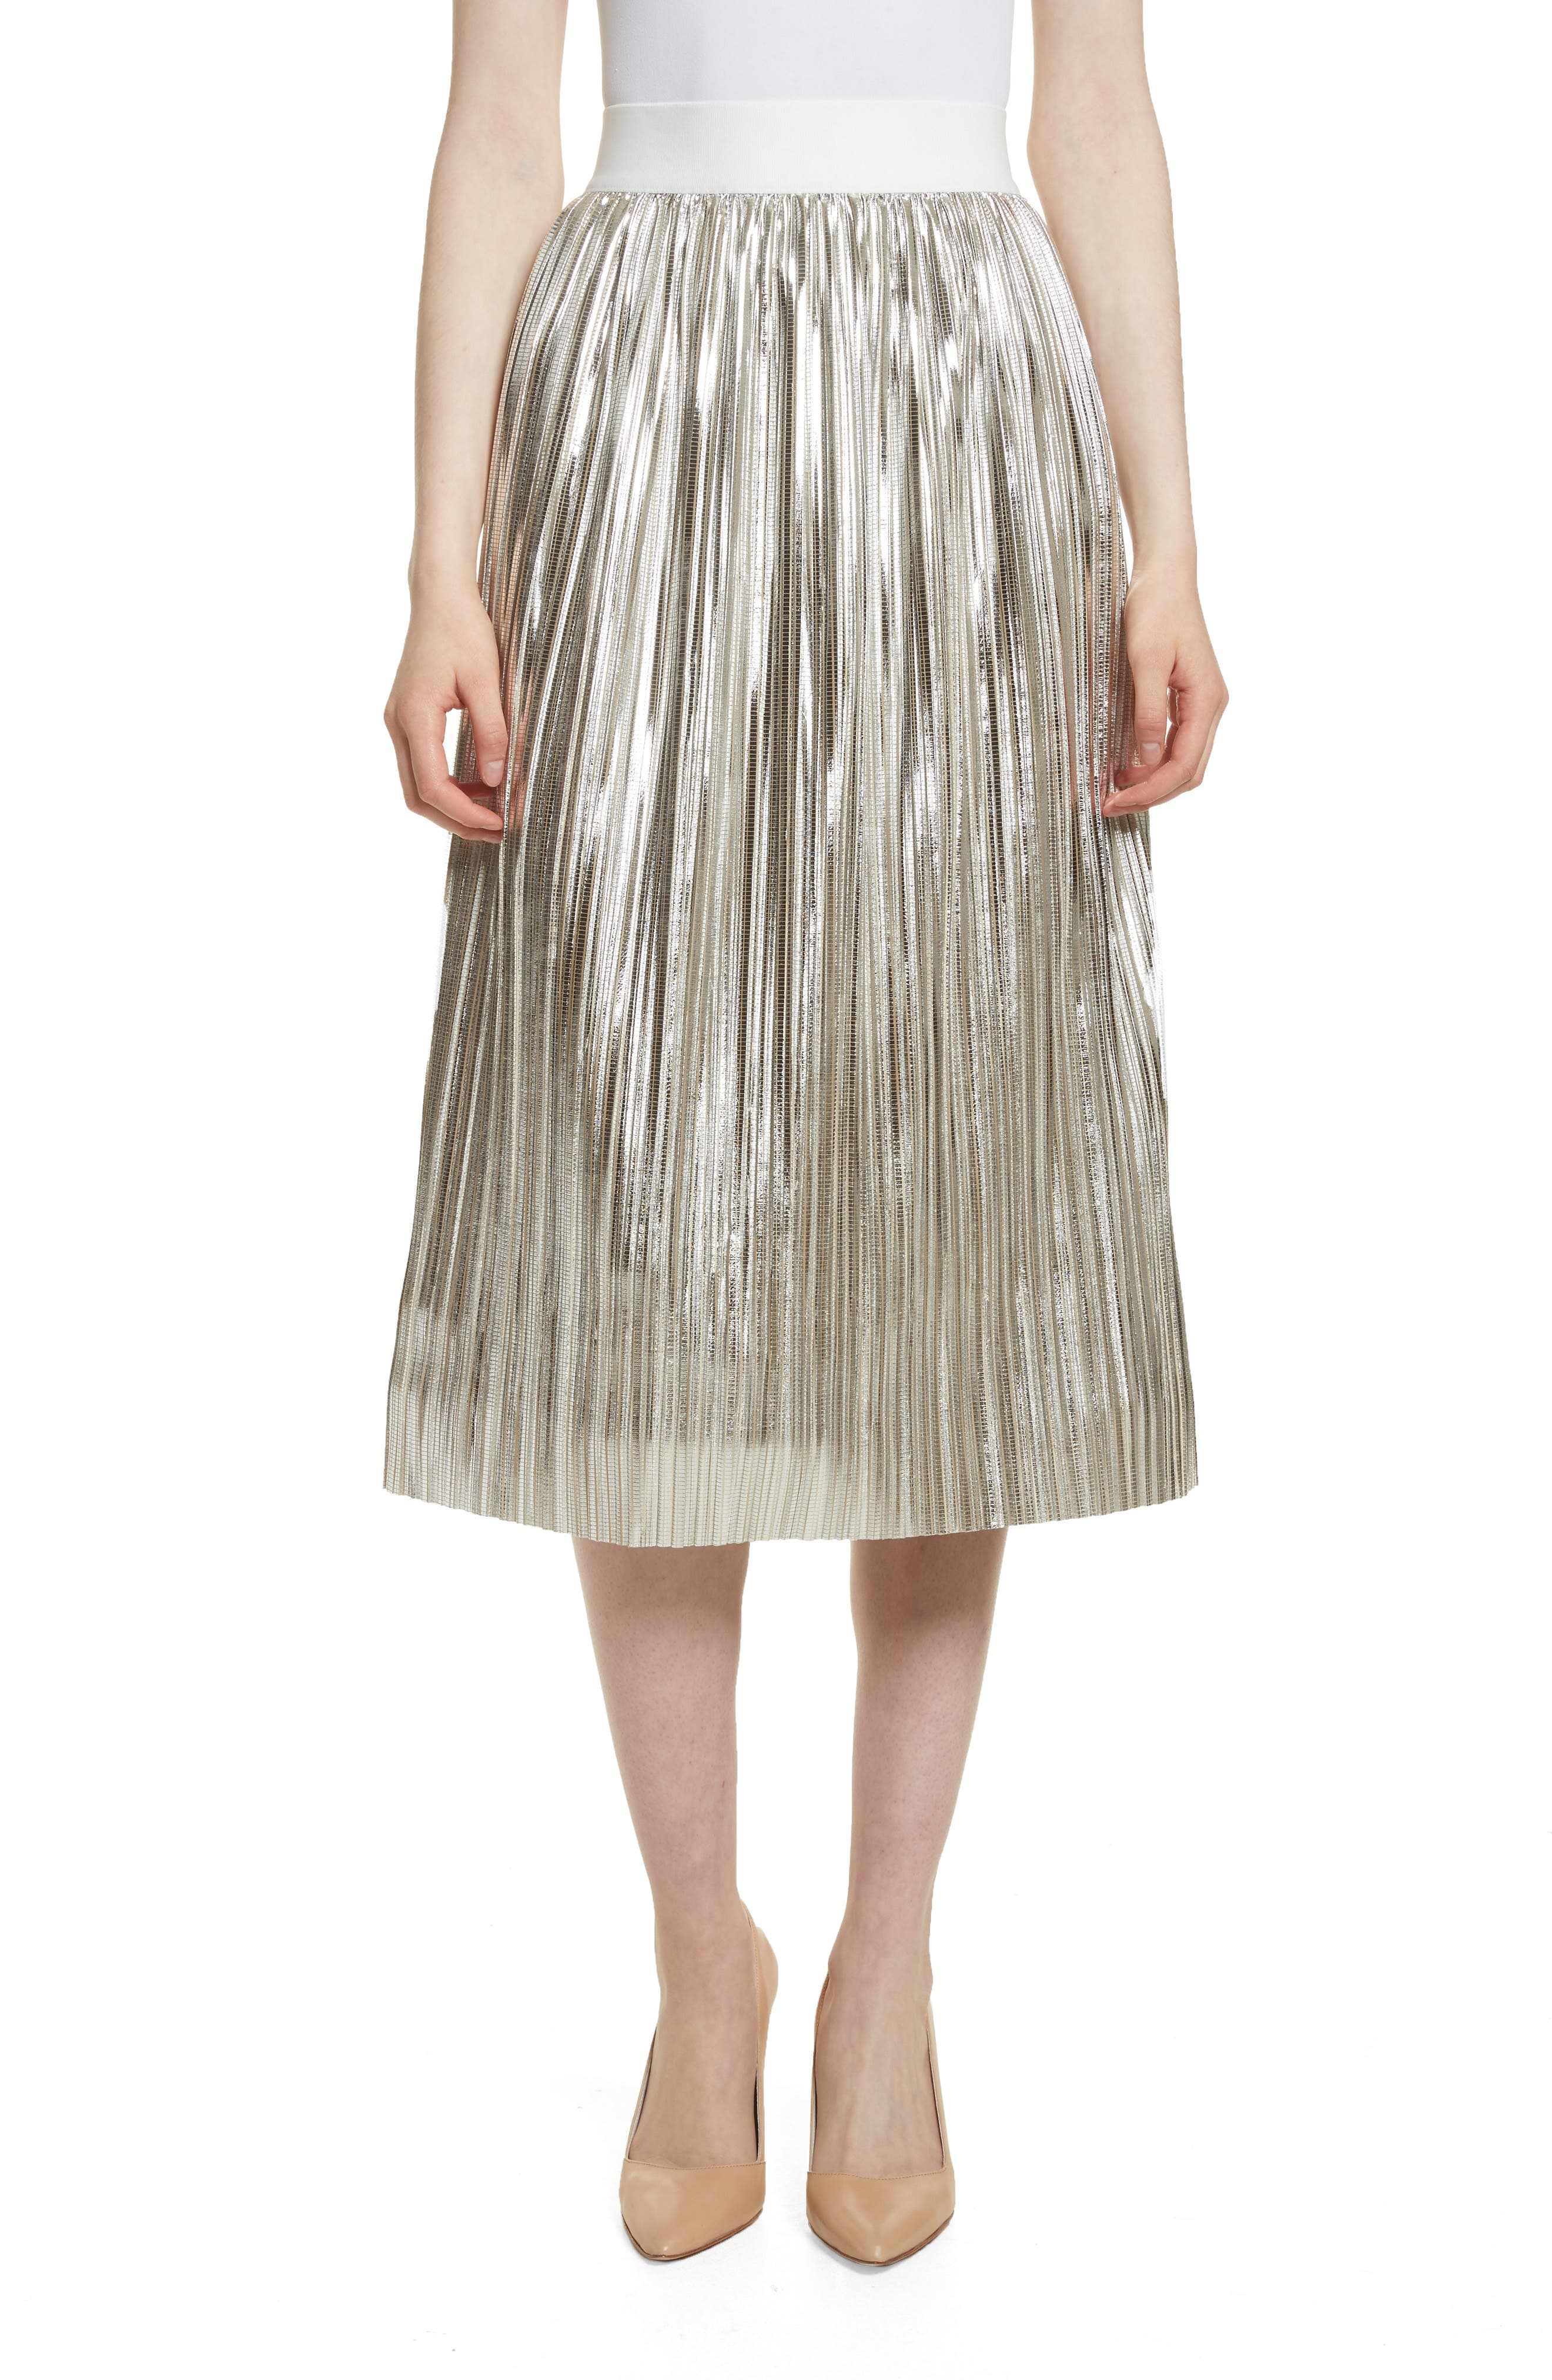 Alice + Olivia Mikaela Pleat Metallic Skirt